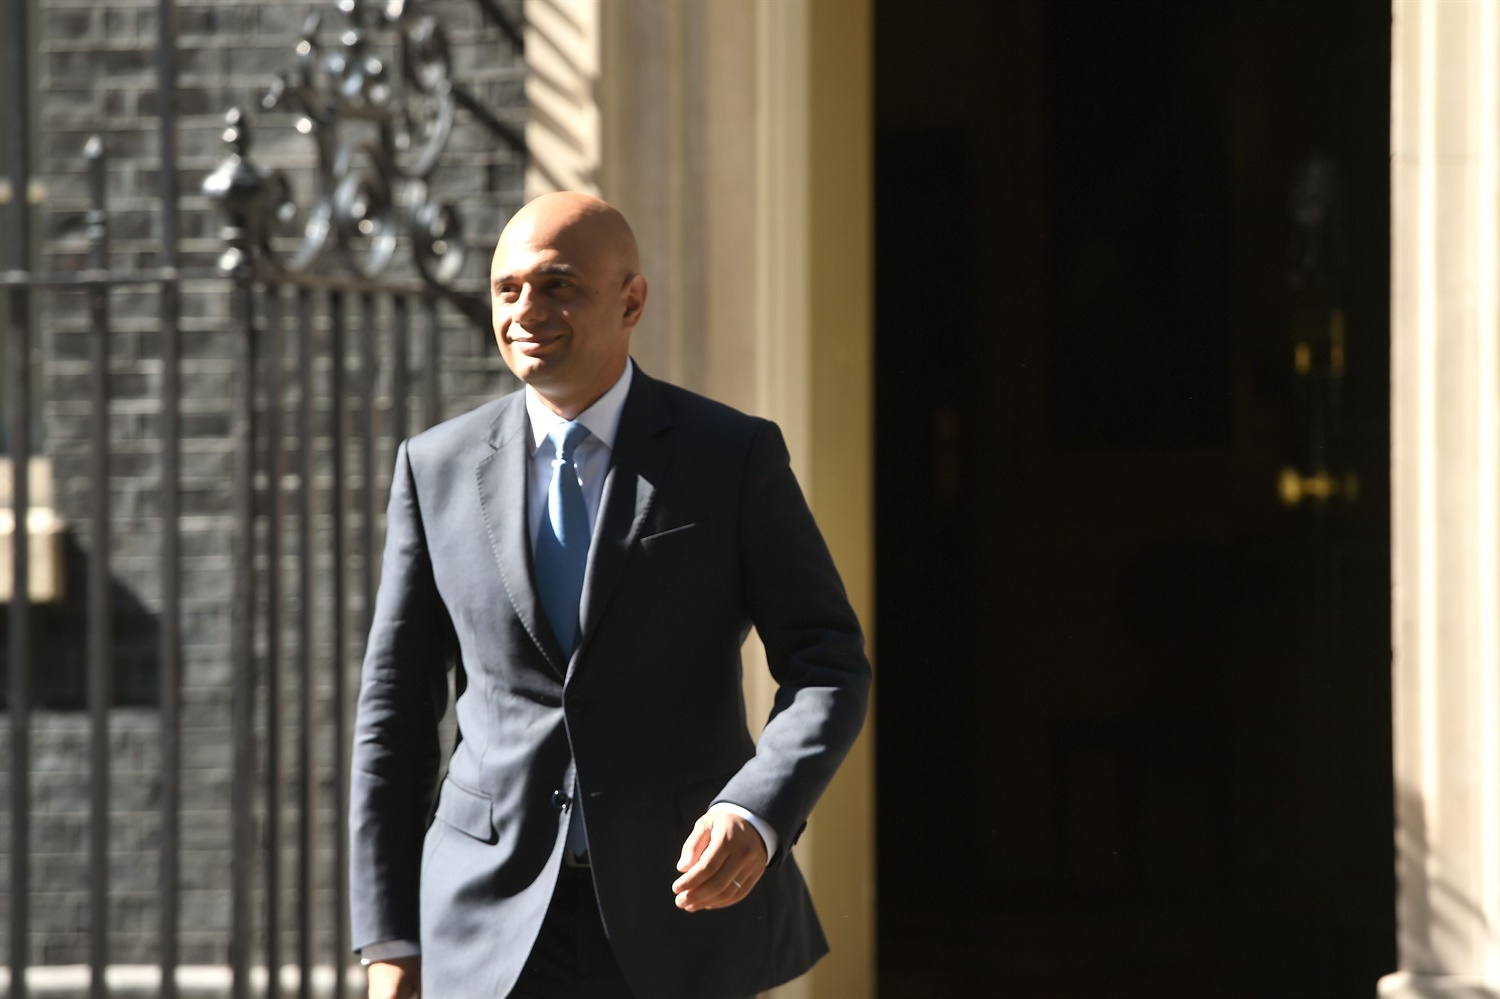 NLGN: Rebuilding council trust a key priority as Javid stays in cabinet